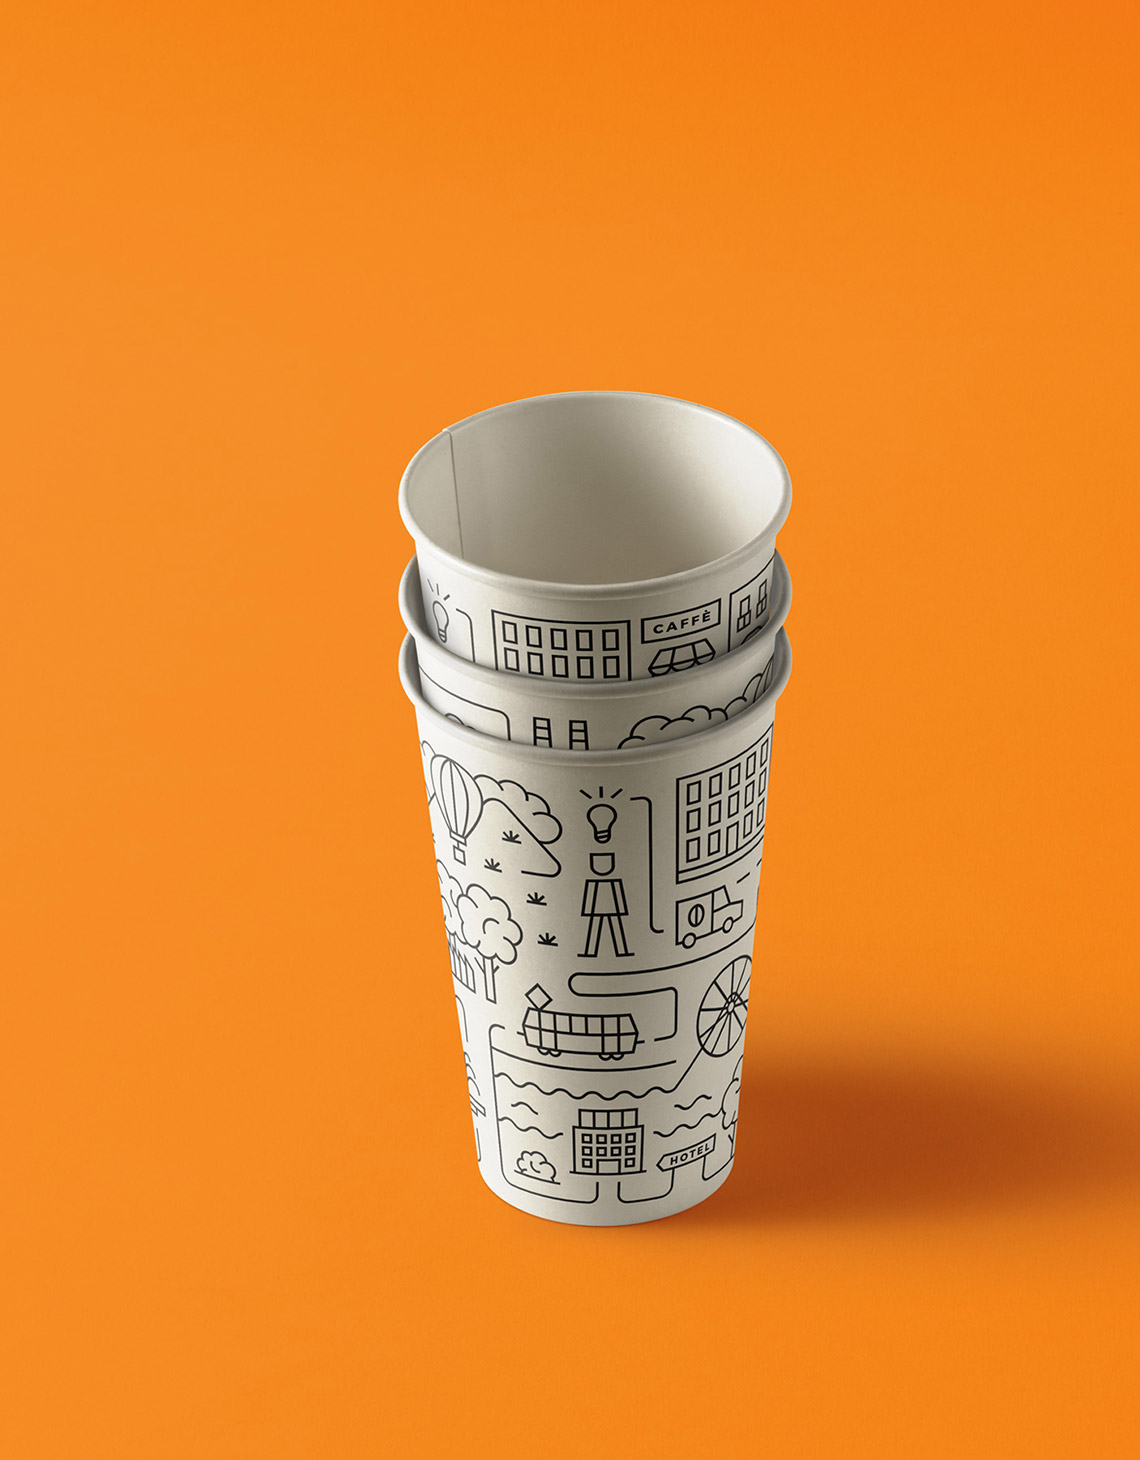 Coffe-Cup-Design-By-Jan-Baca